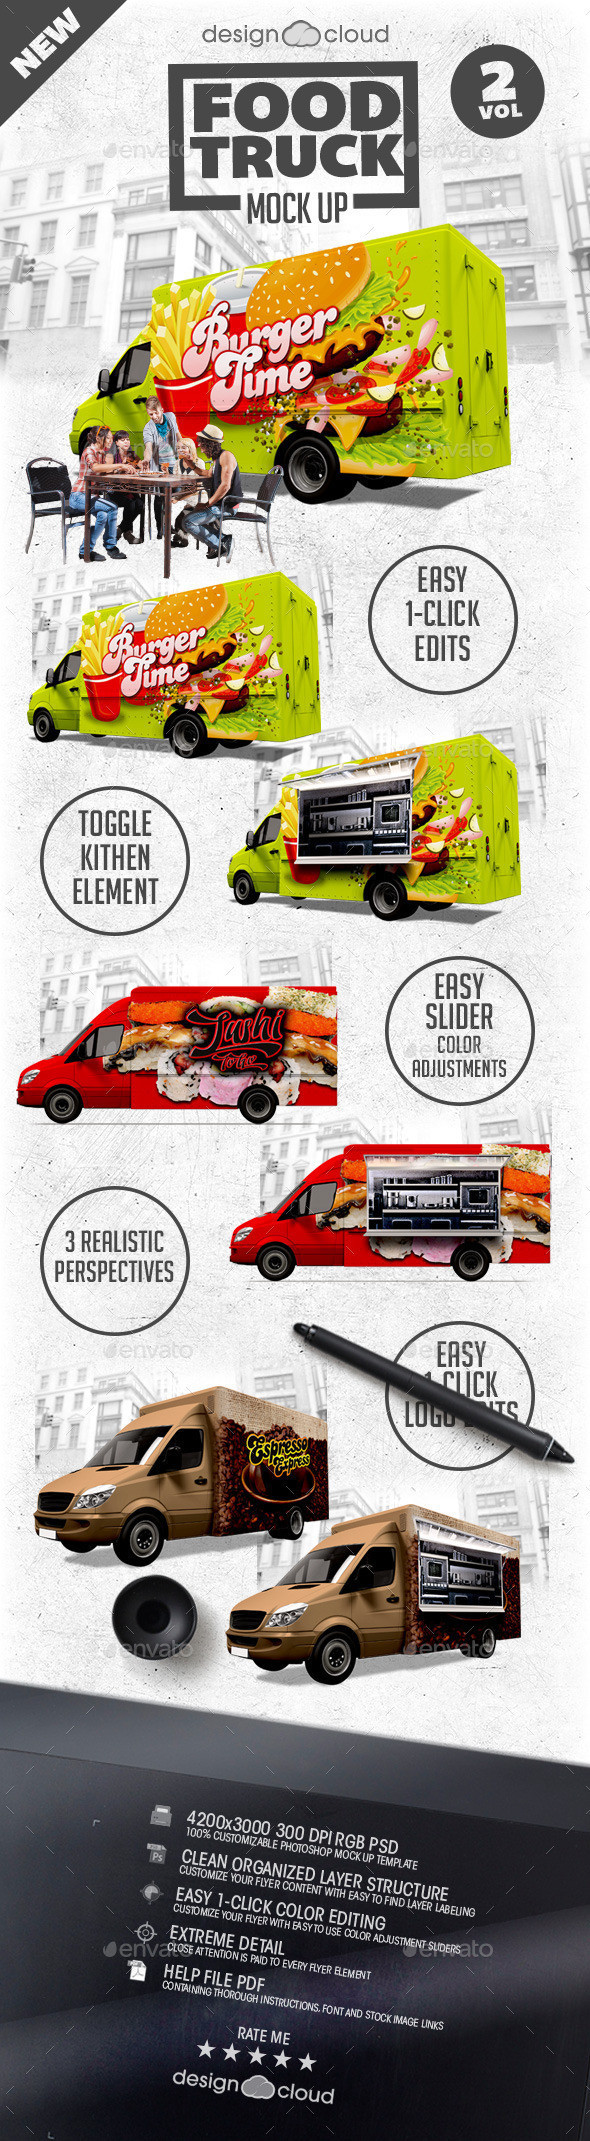 Food Truck Design Template